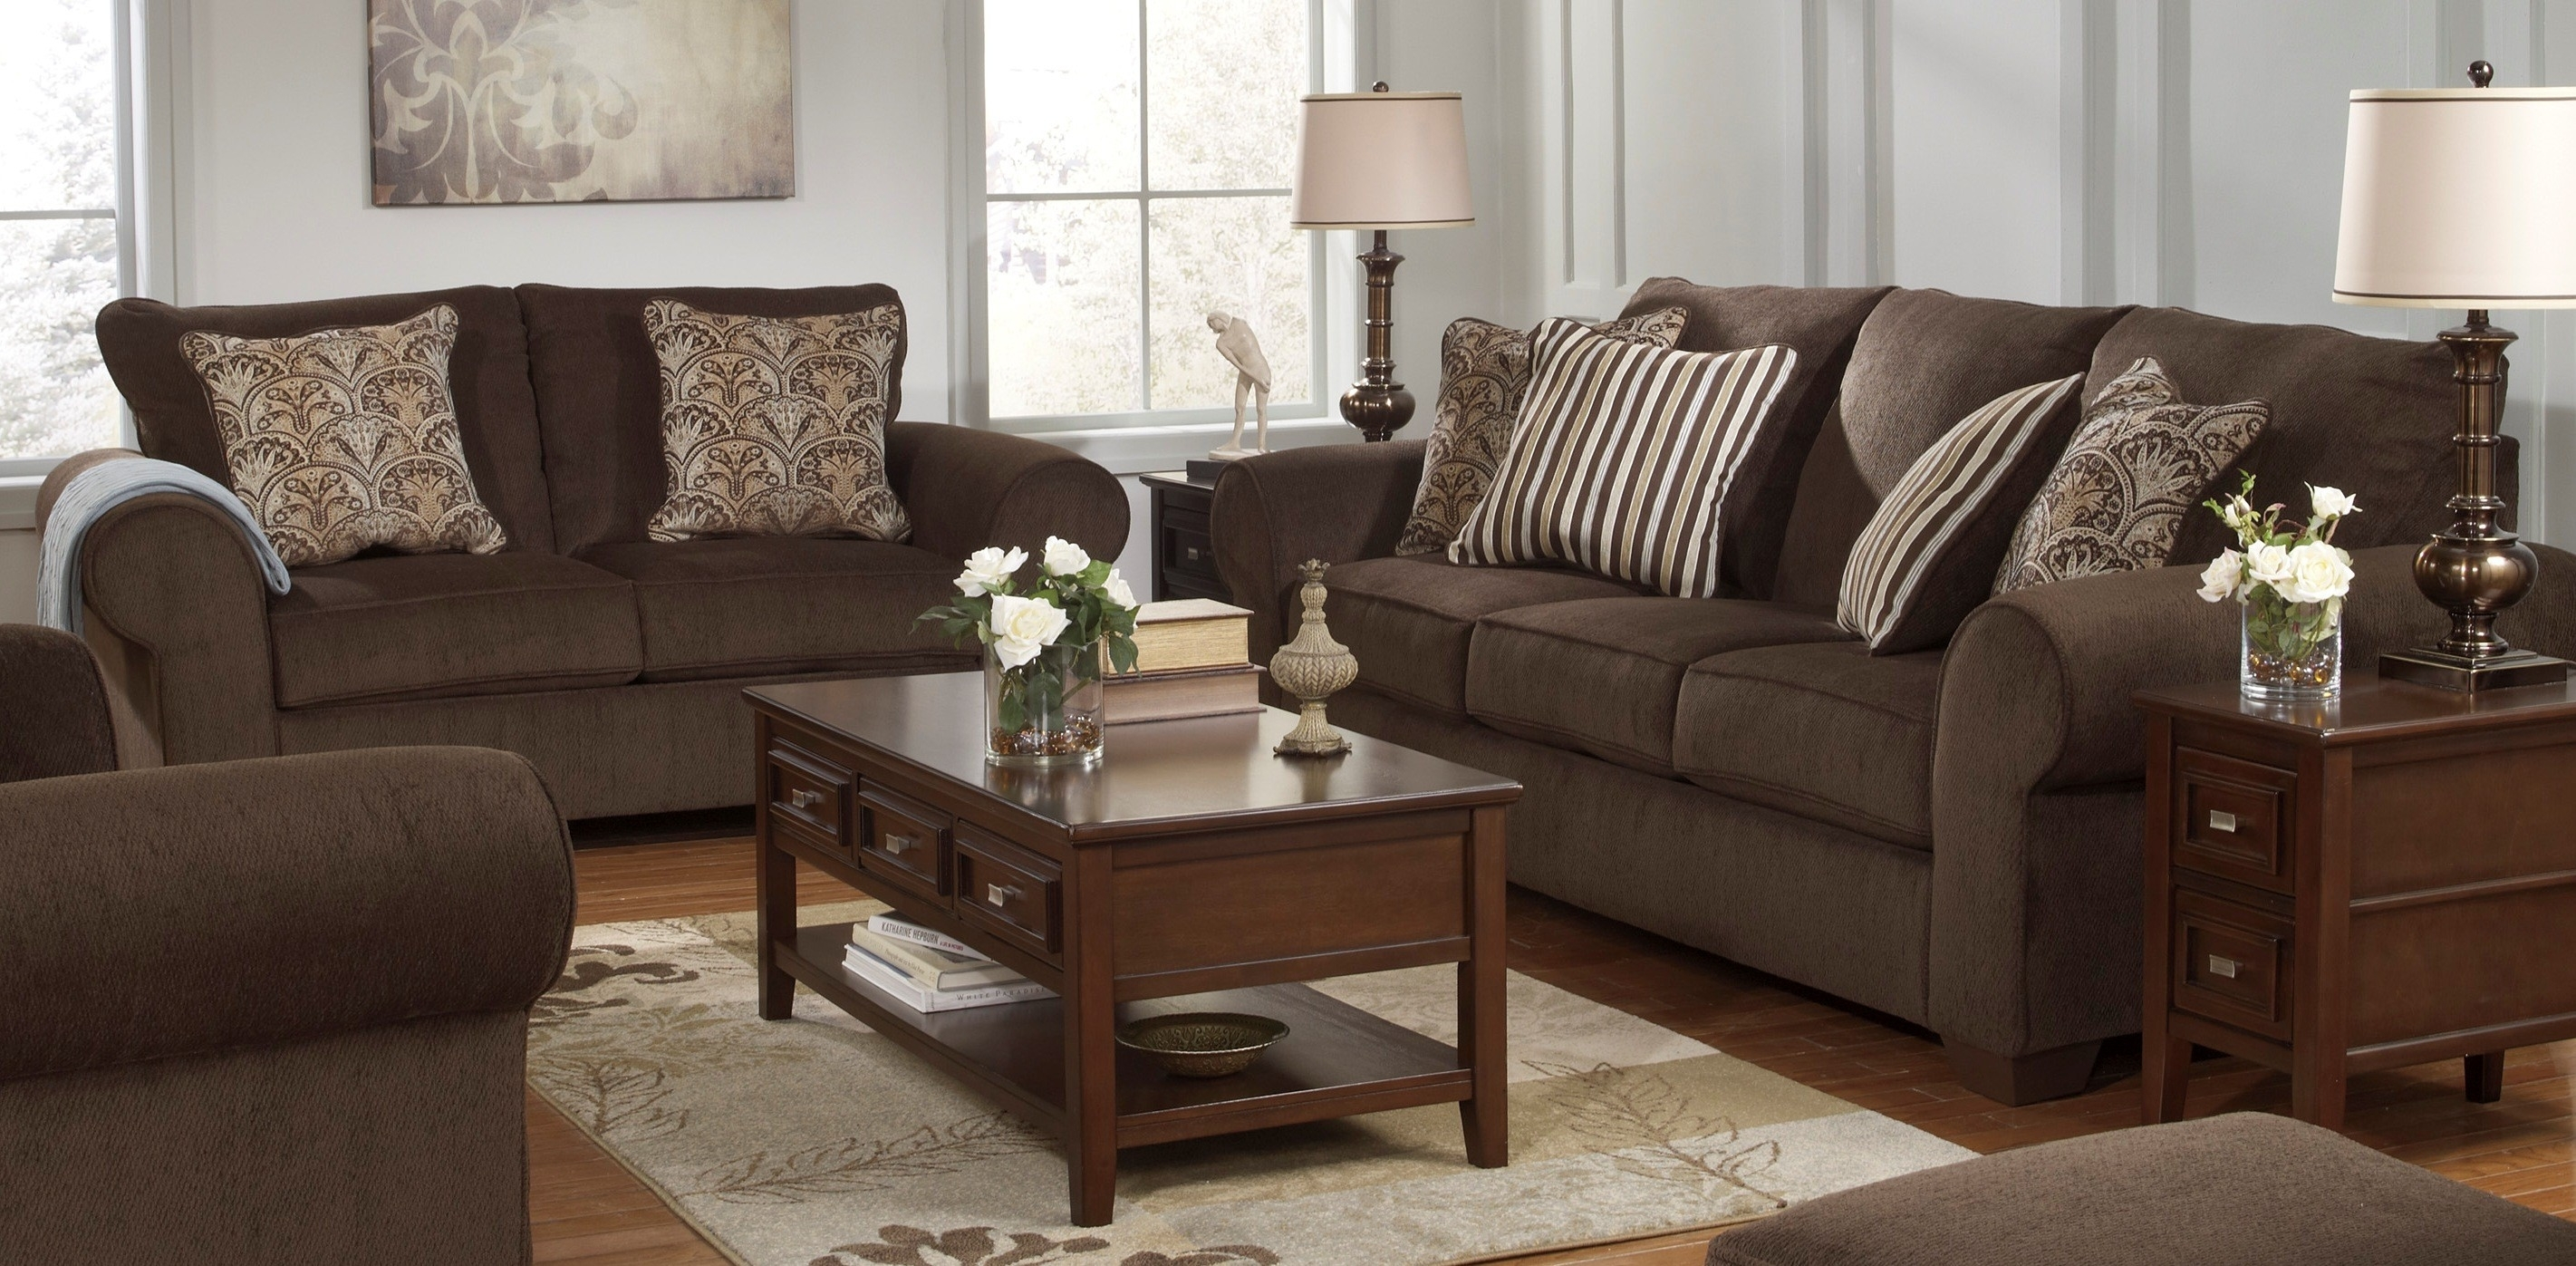 10 Luxury Ashley Furniture Greenville Nc | Home Decorating Blogs Throughout Greenville Nc Sectional Sofas (Photo 6 of 10)